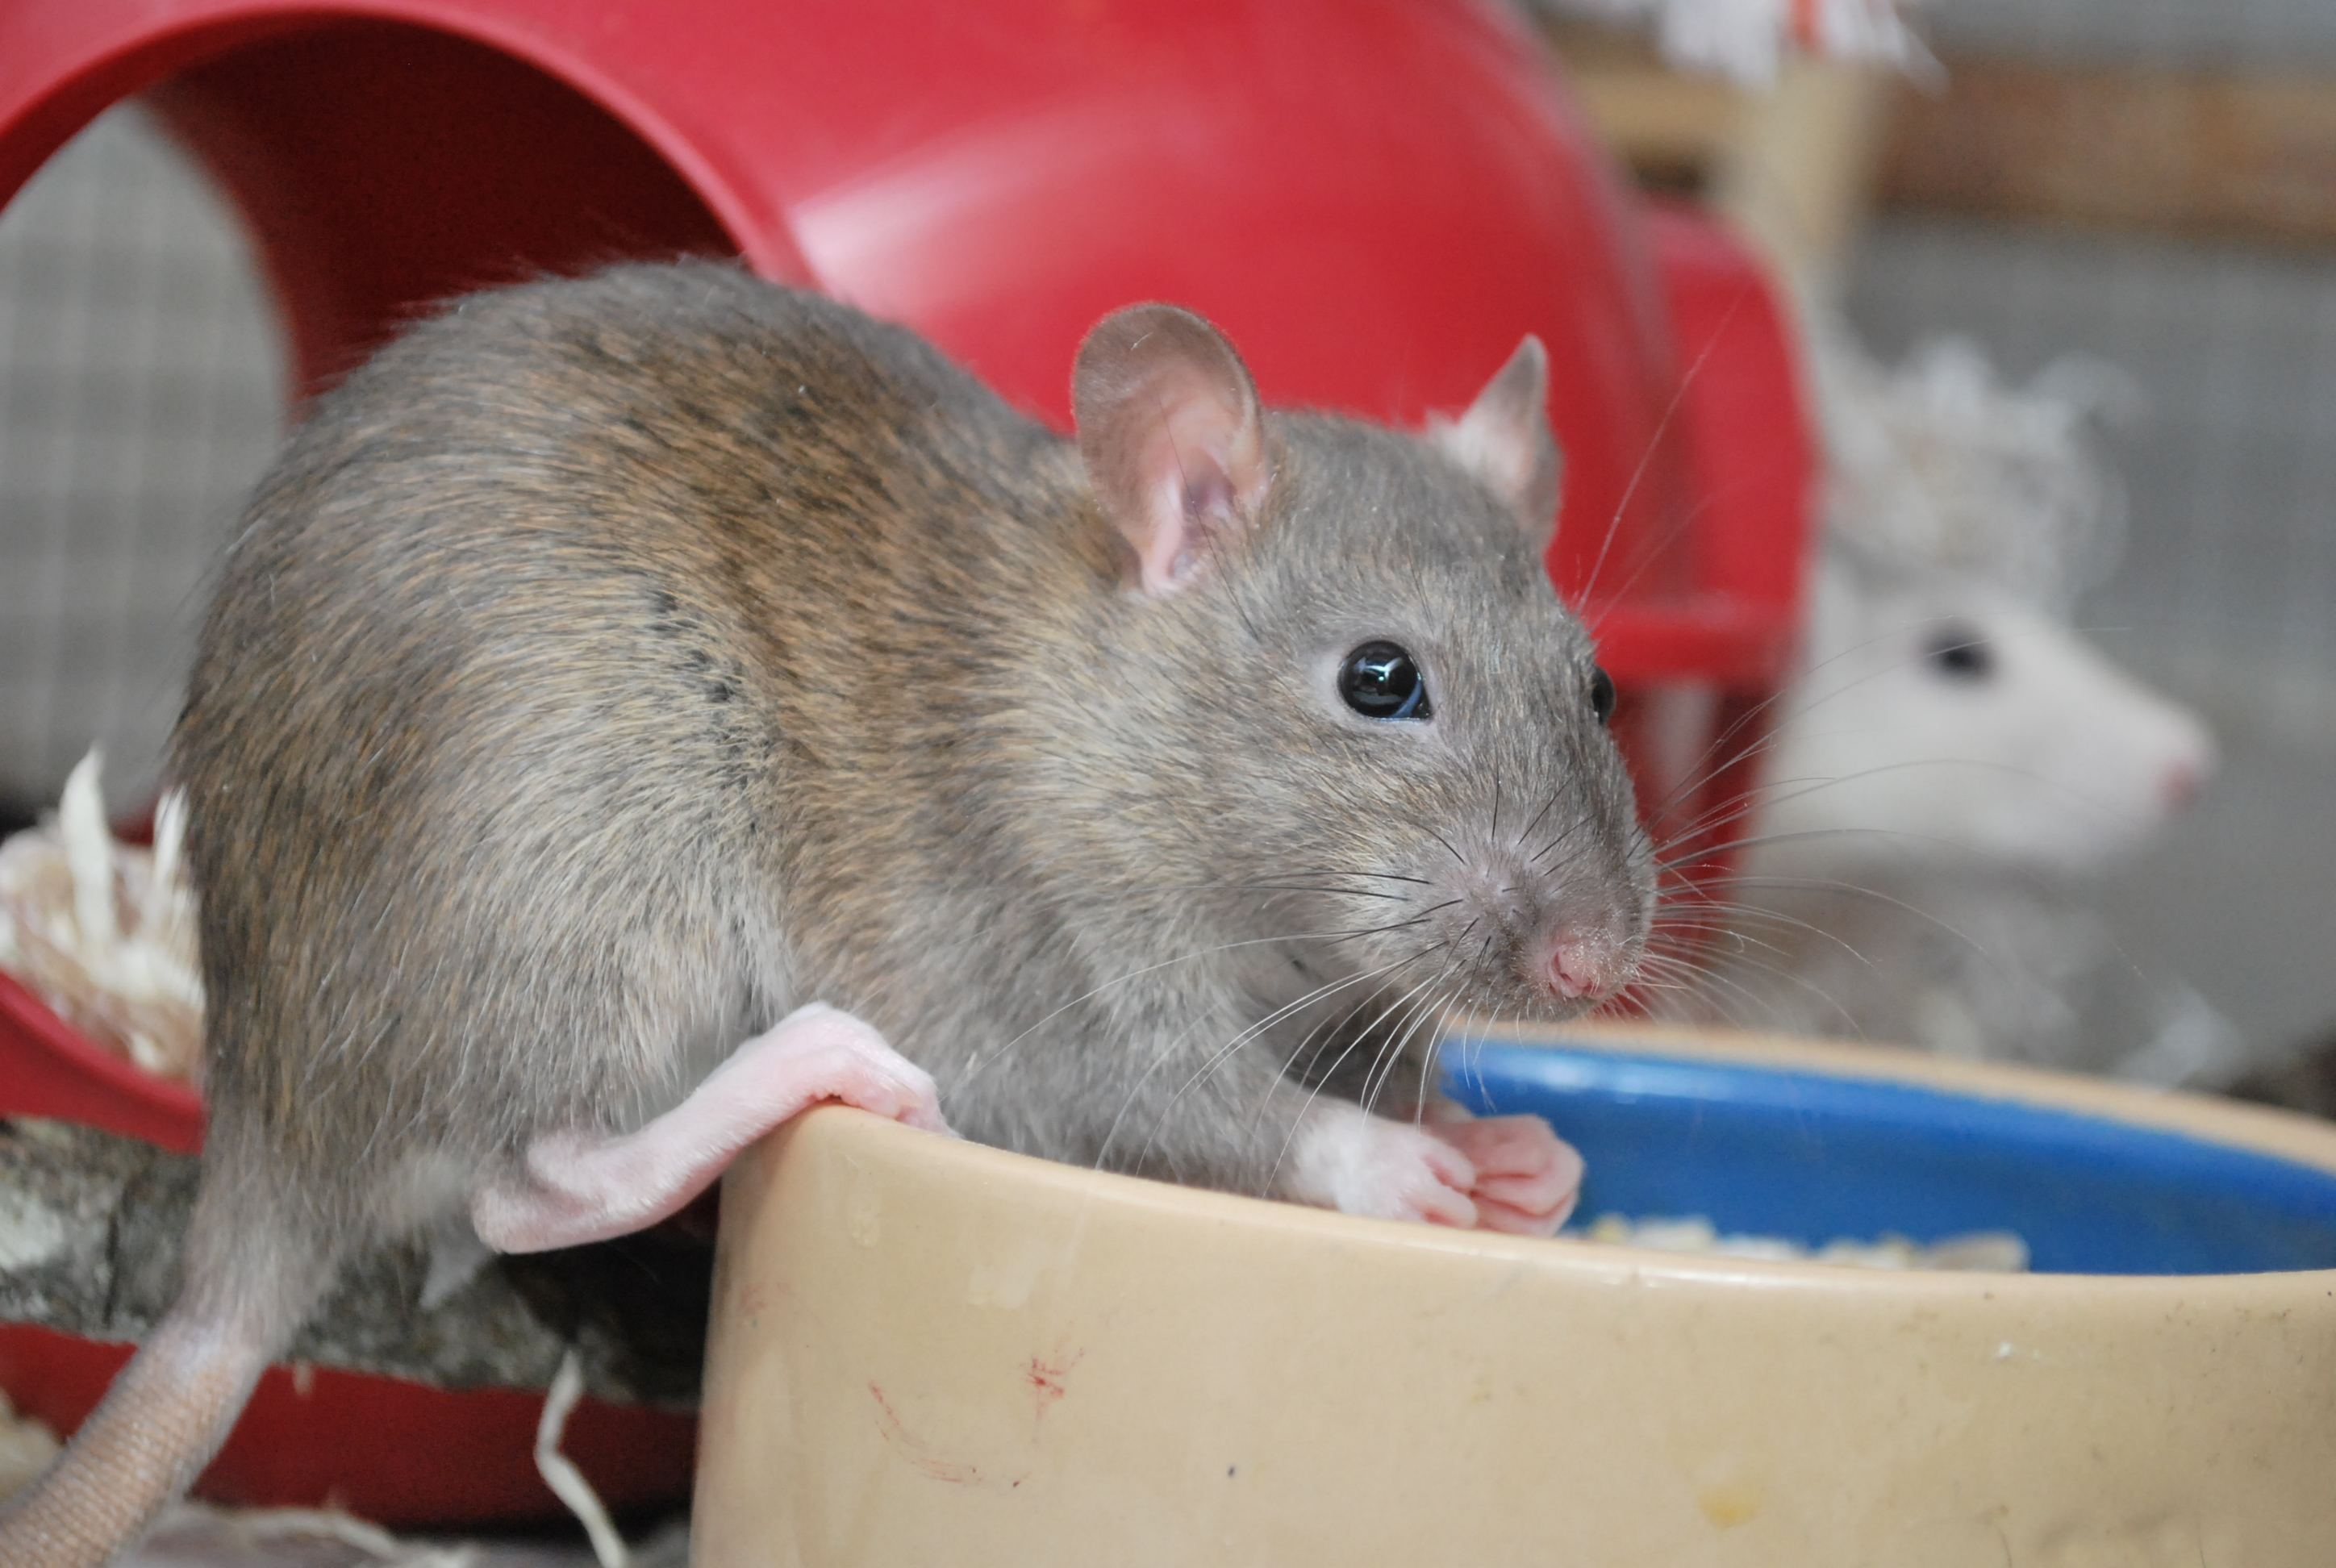 File:Agouti pet rat.jpg - Wikimedia Commons